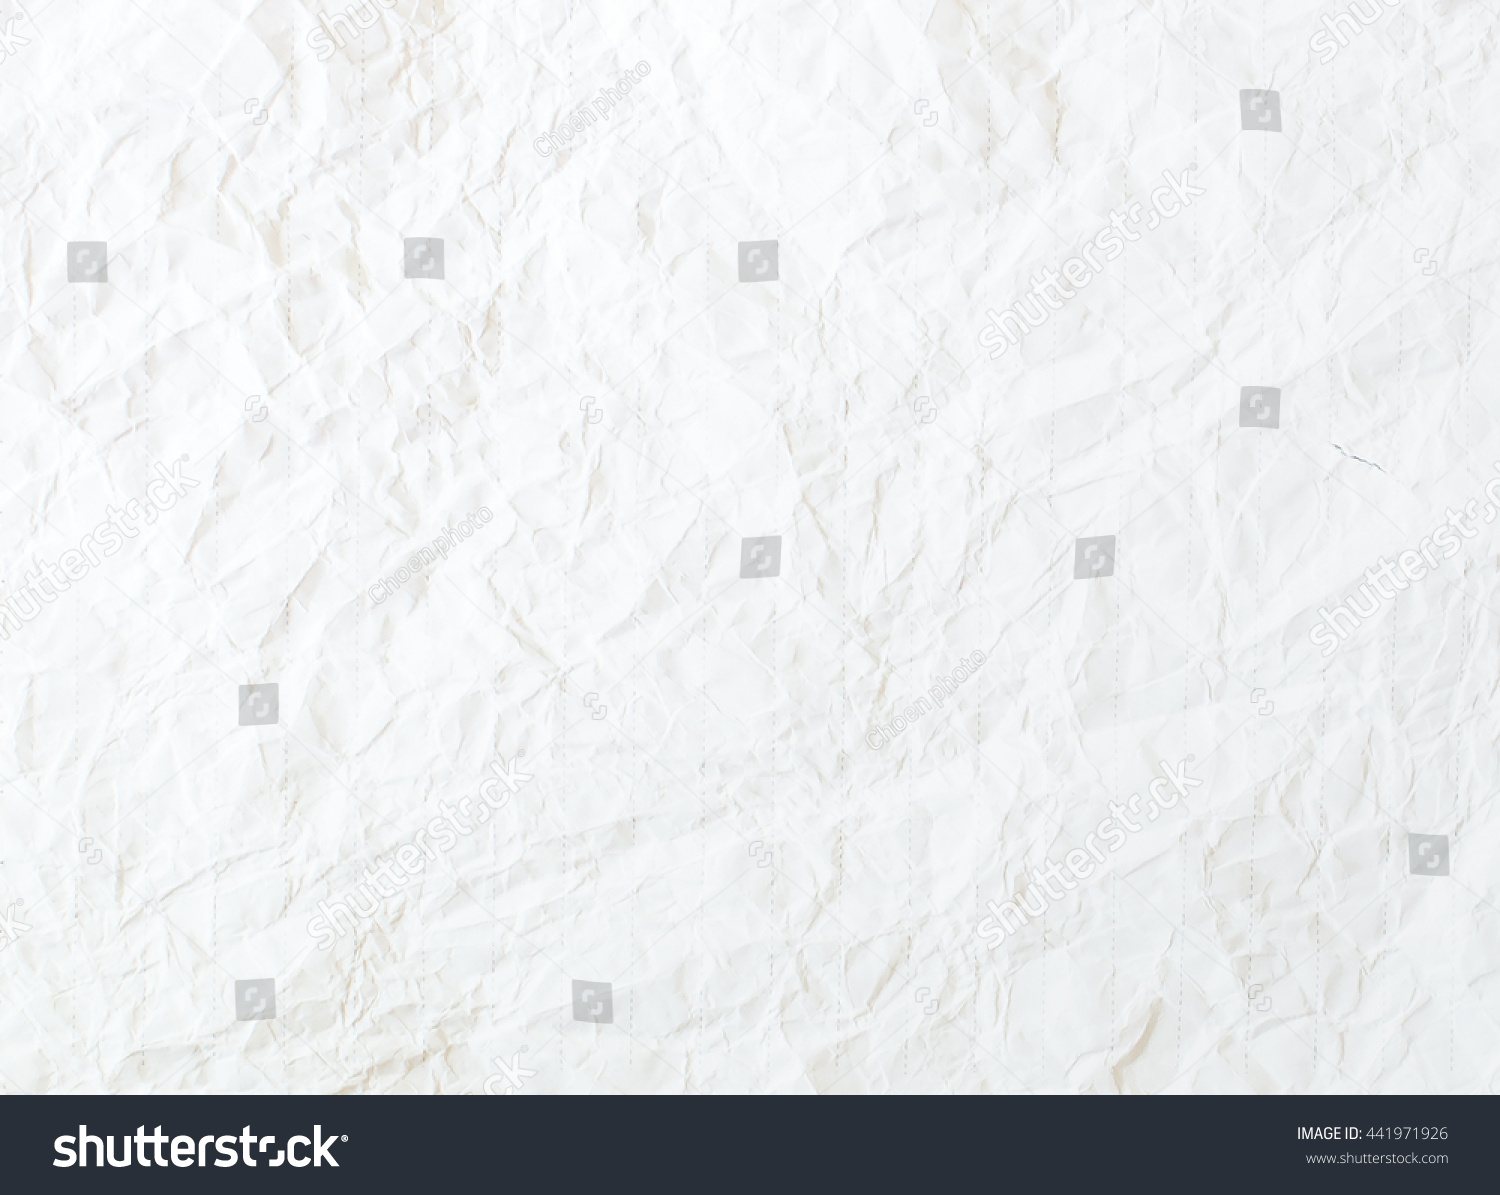 Frosted Glass Texture Background White Color Photo 441971926 – Loose Leaf Paper Background